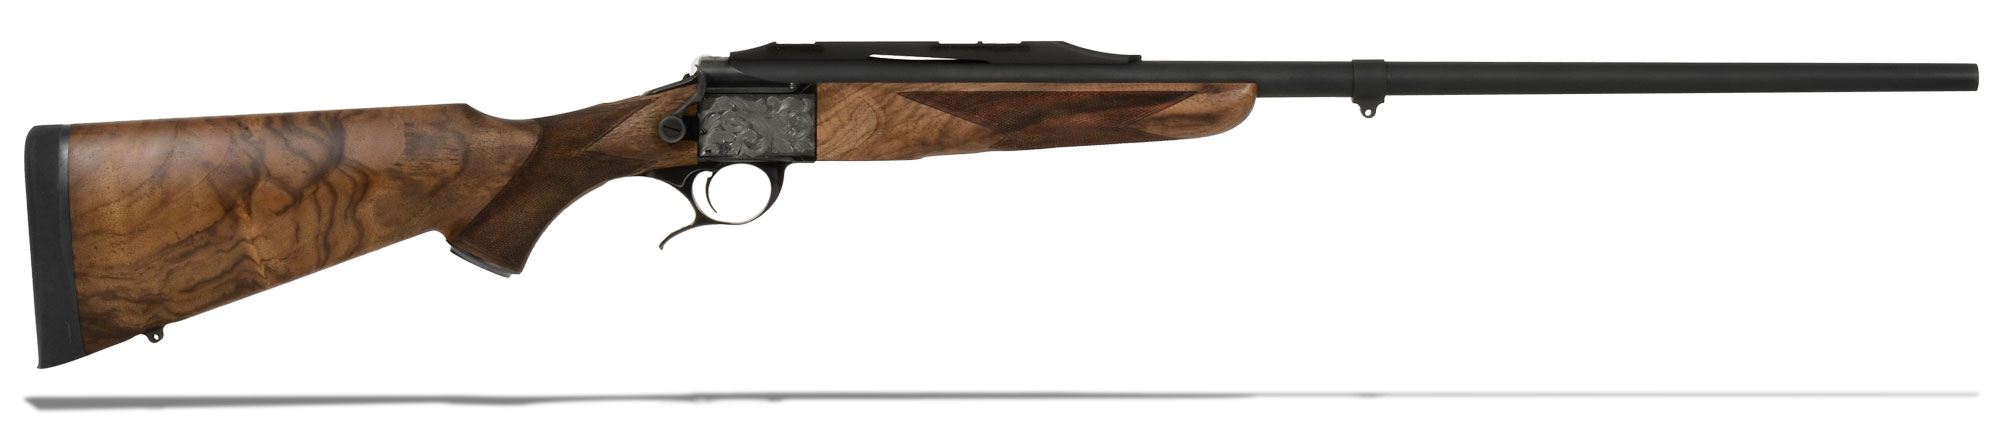 Luxus Arms Model 11 Single Shot .270 Win L297